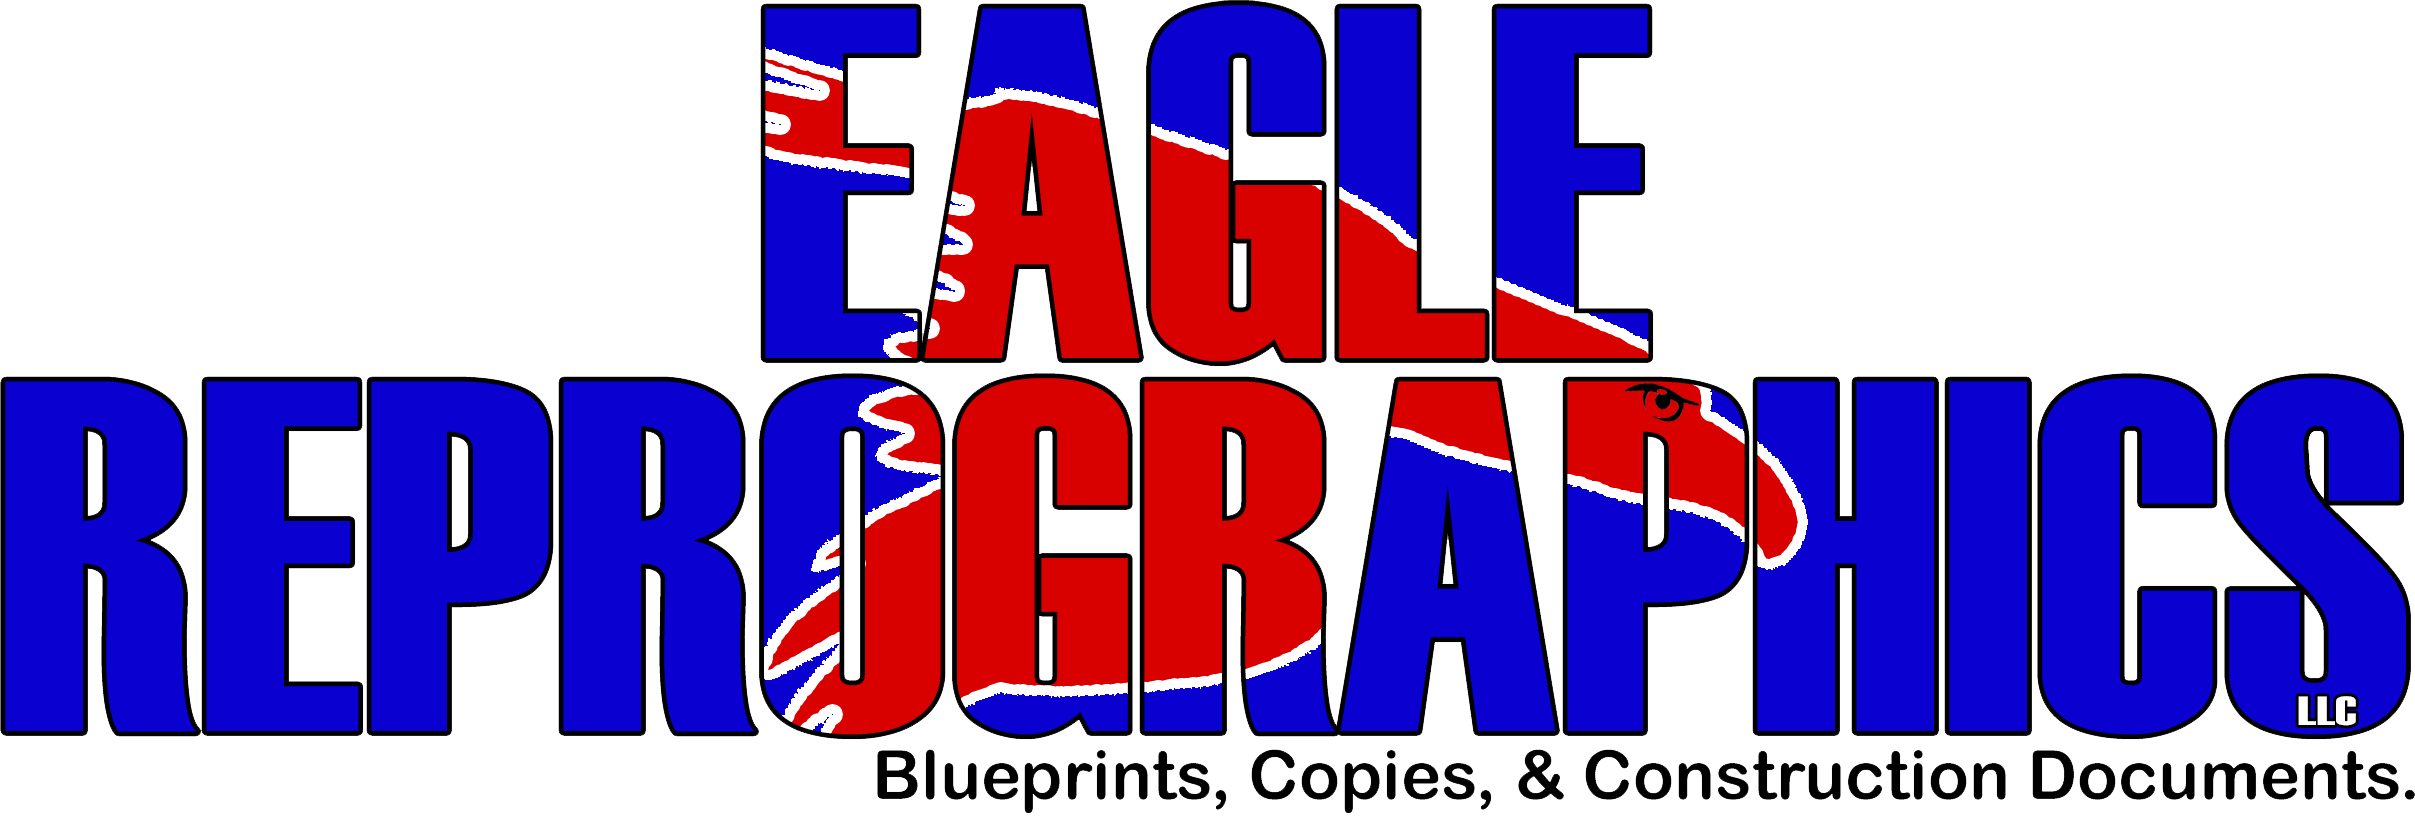 Printing services carrollton eagle reprographics llc malvernweather Choice Image